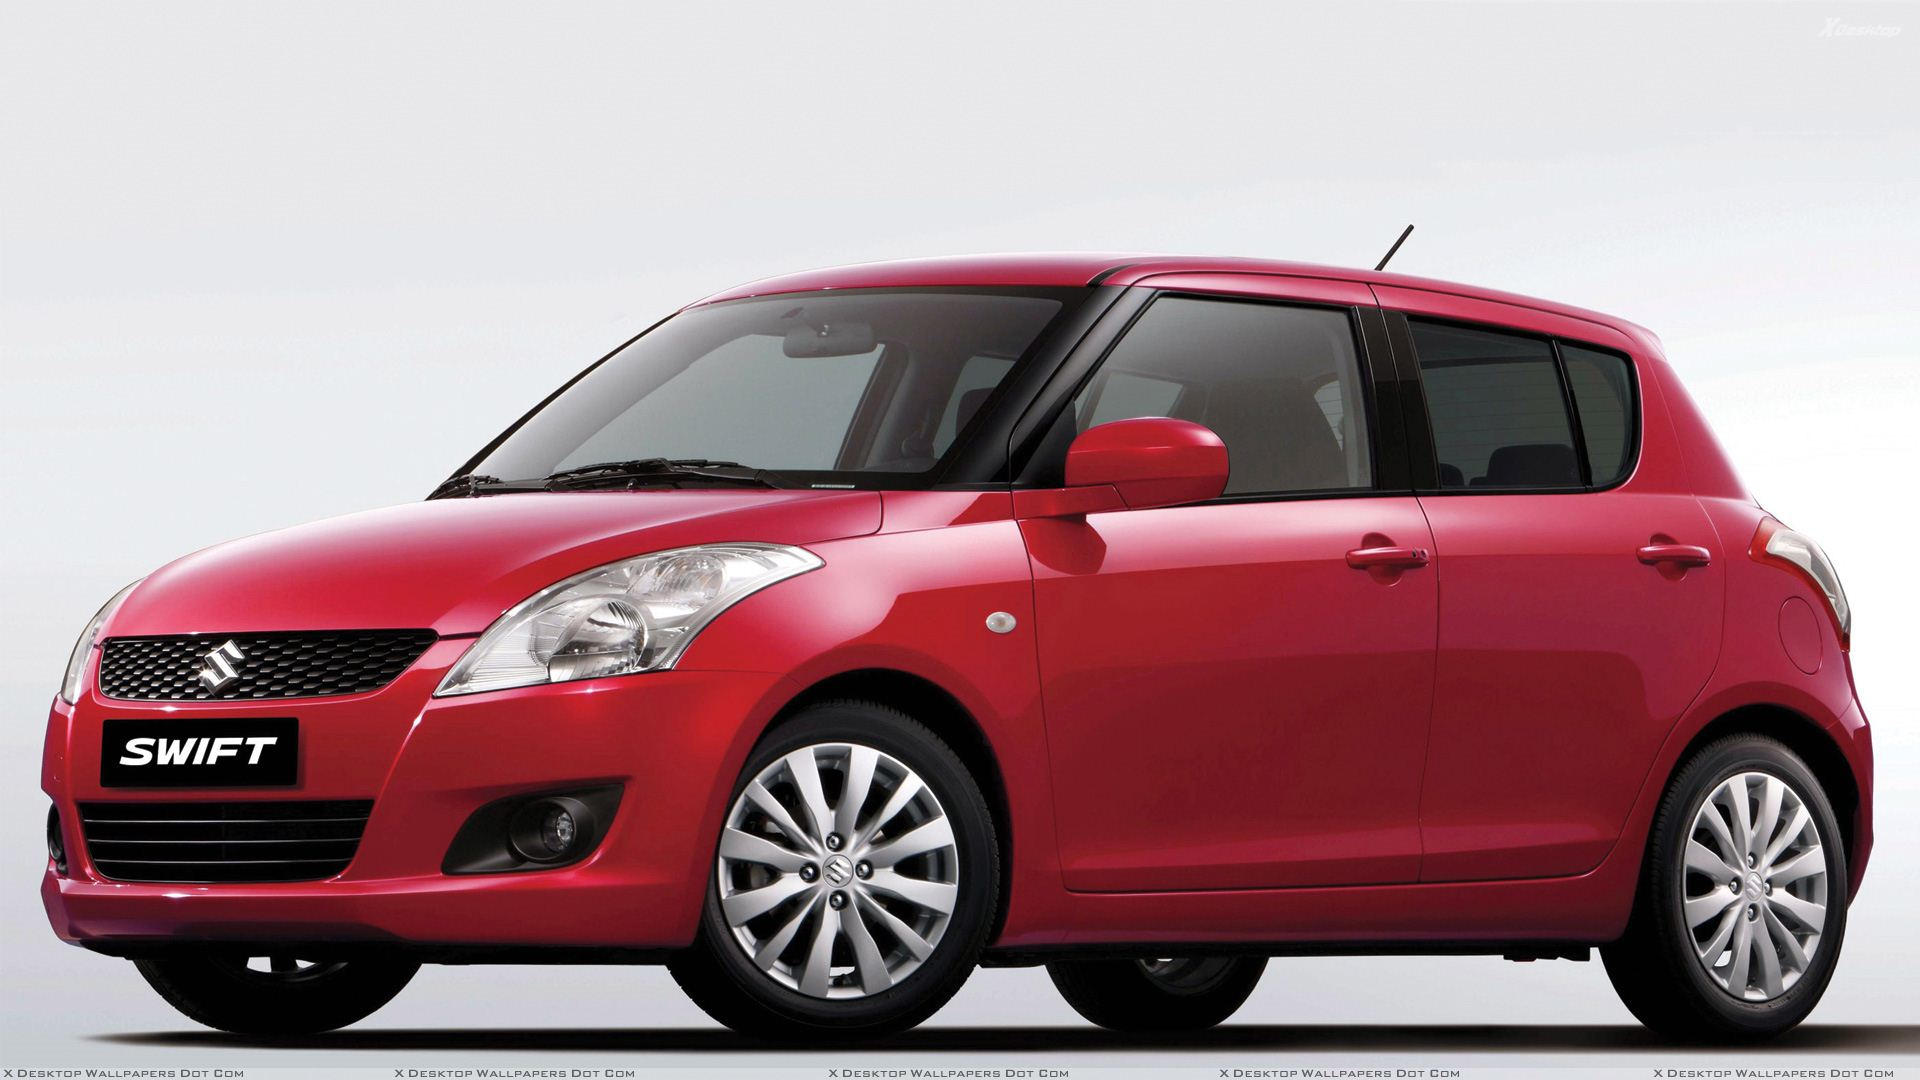 suzuki swift wallpapers, photos & images in hd